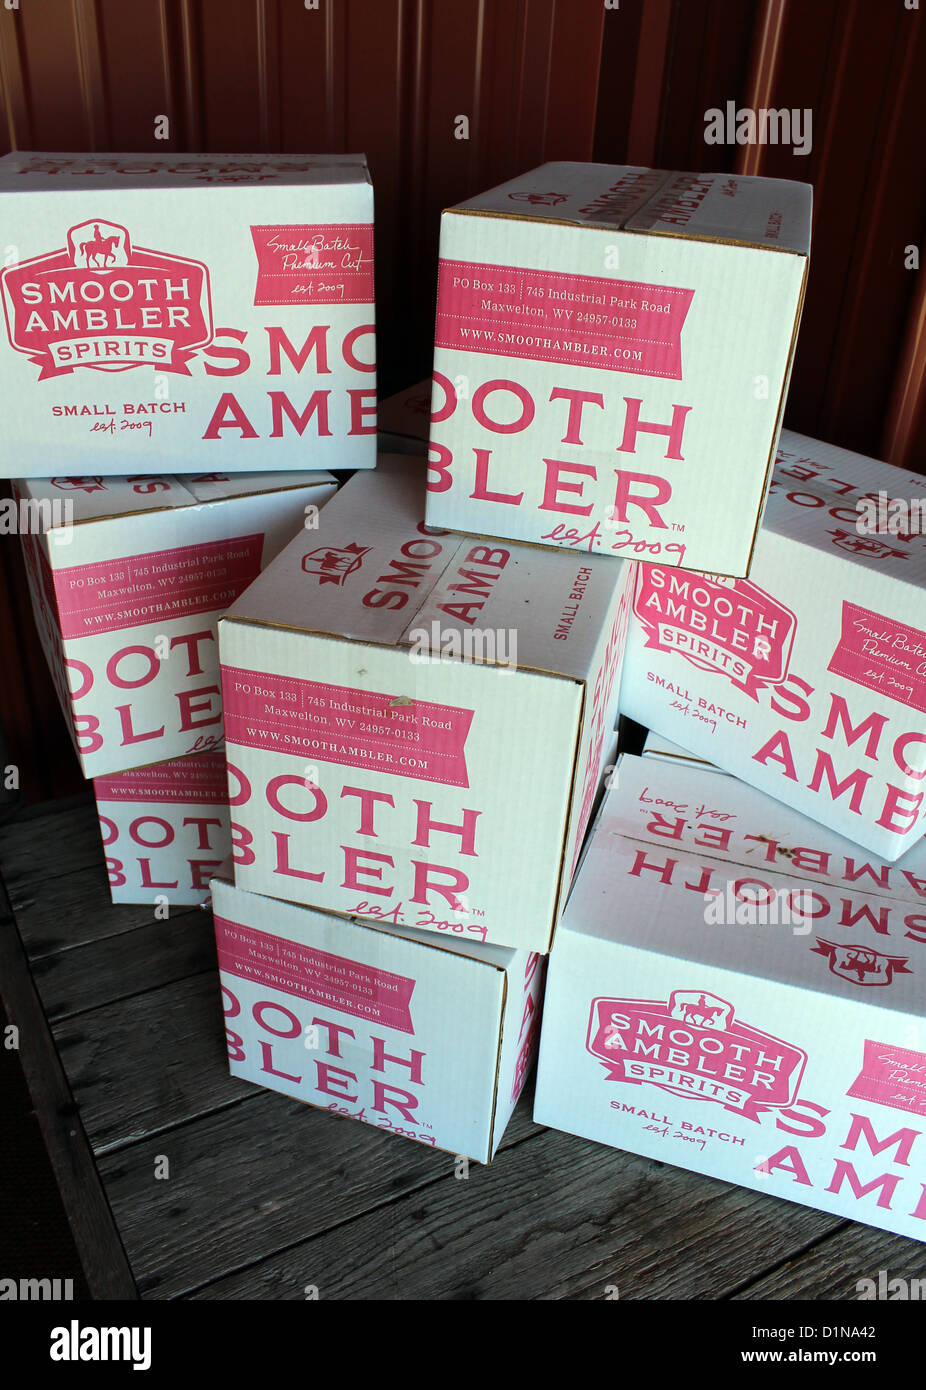 Smooth Ambler spirits boxes, West Virginia, America, USA - Stock Image